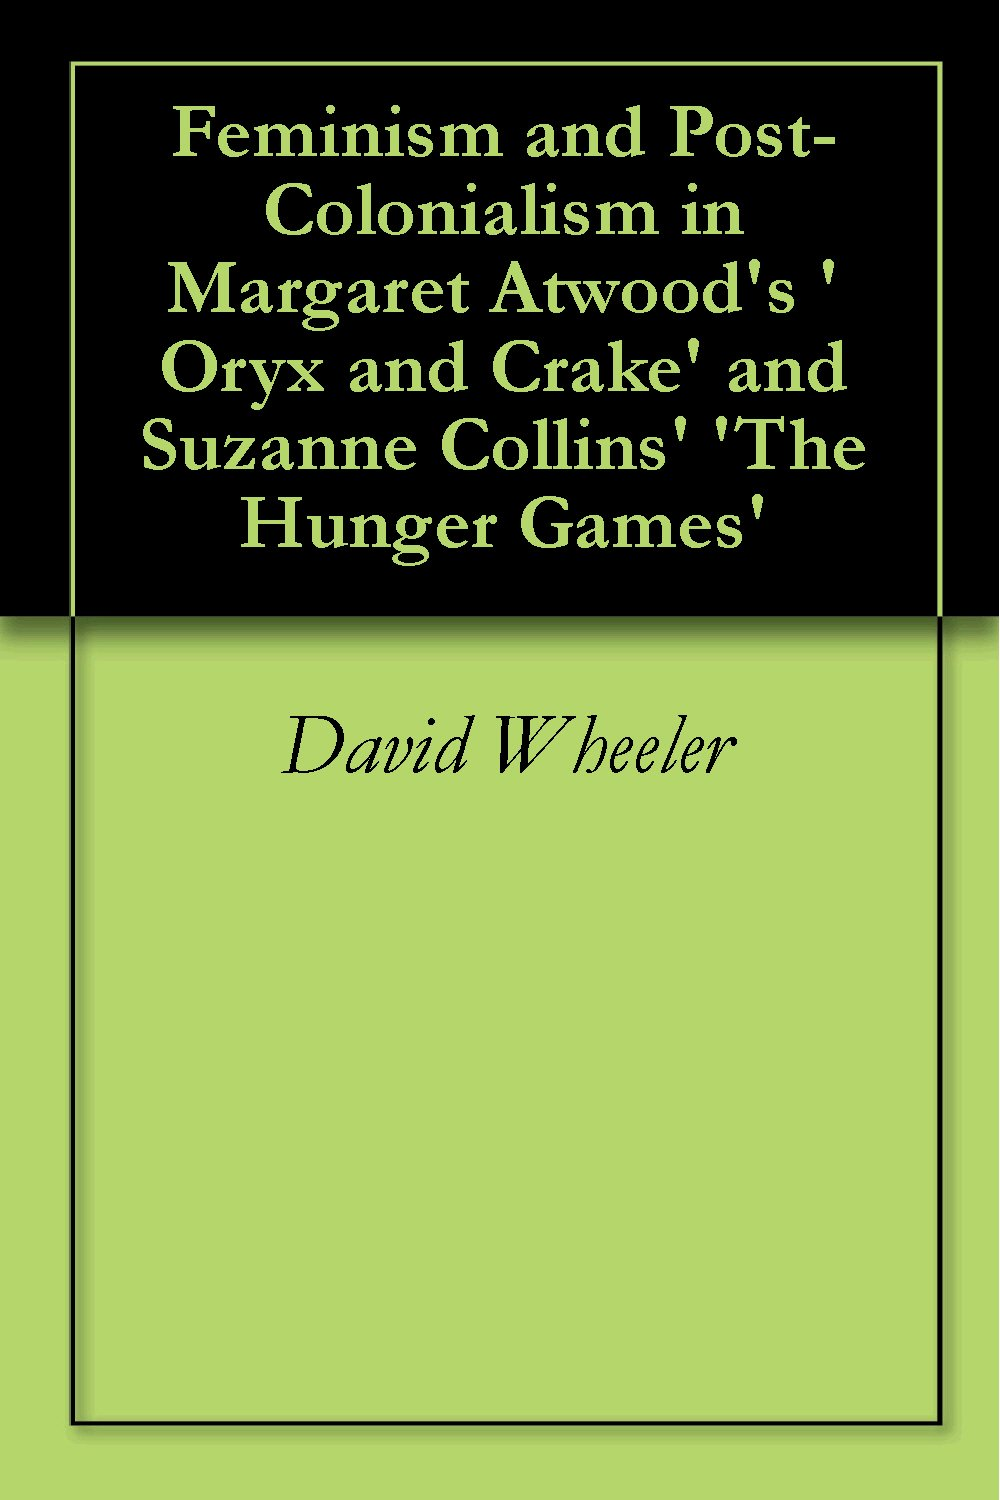 "oryx and crate essay Oryx and crake essay oryx and crake essay on page 206 of margaret atwood's novel oryx and crake, protagonist jimmy wonders, ""why is it he feels some line has been crossed, some boundary transgressed."